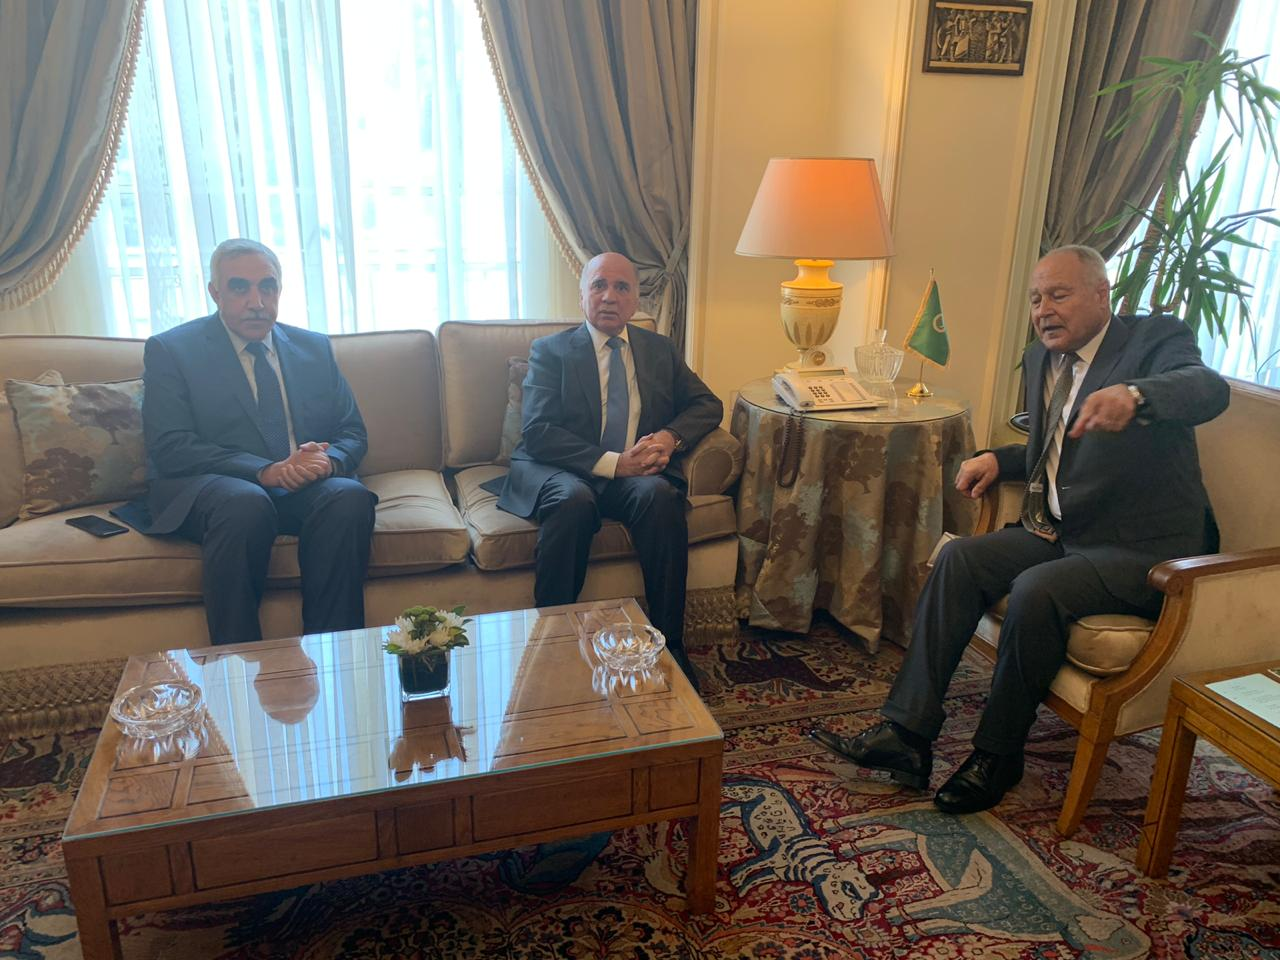 Minister of Finance arrives in Cairo to participate in Arab finance ministers meeting 2a3d74f1-8d65-4f42-baa2-2bdb3e020683